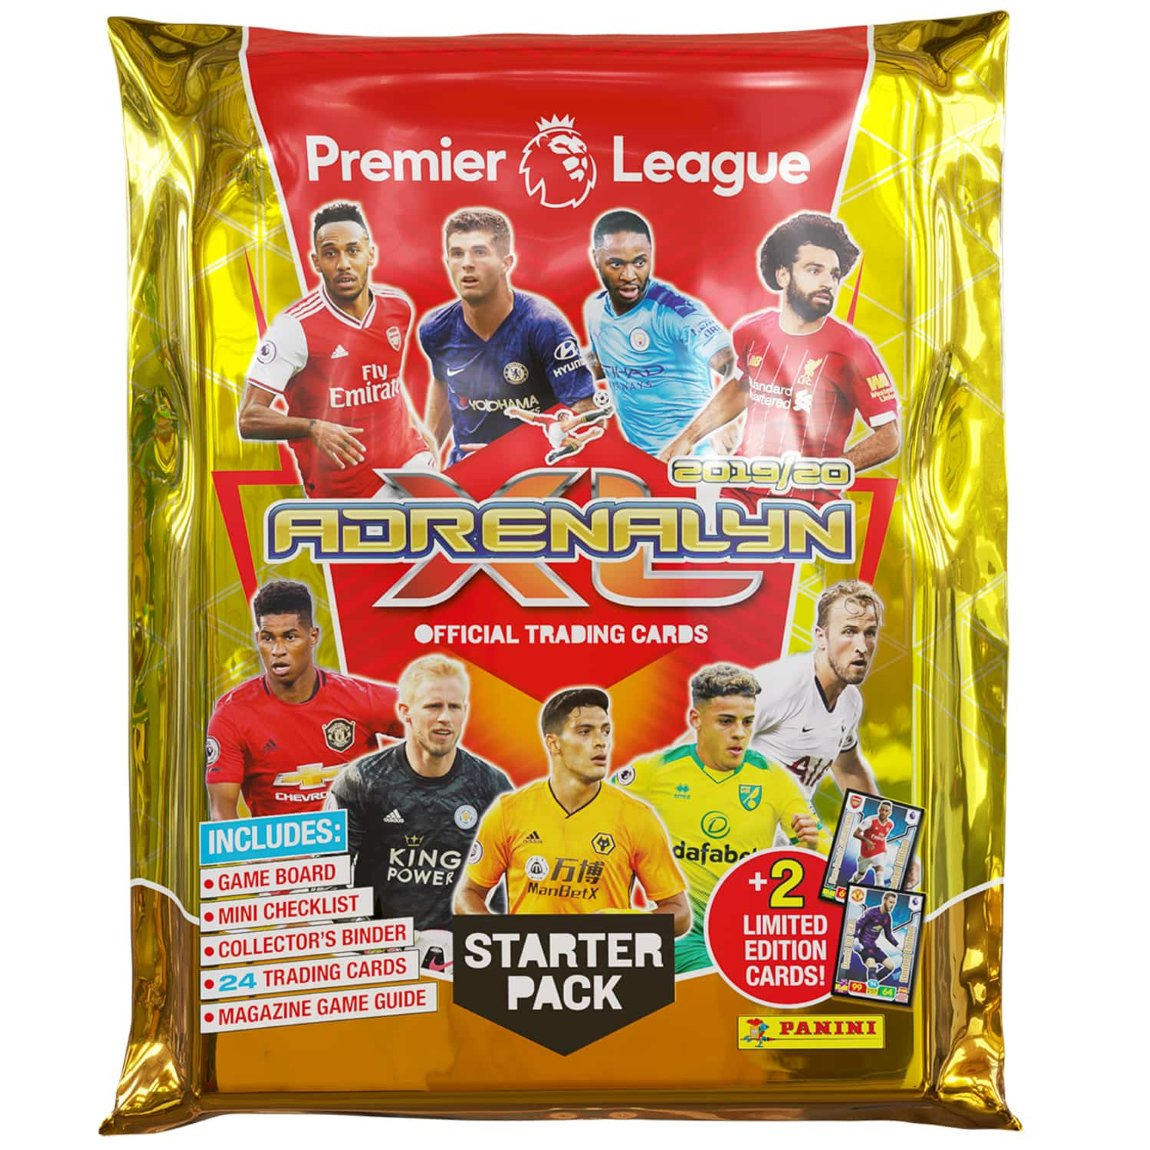 Premier League Adrenalyn XL 2019/20 Trading Cards Starter Pack